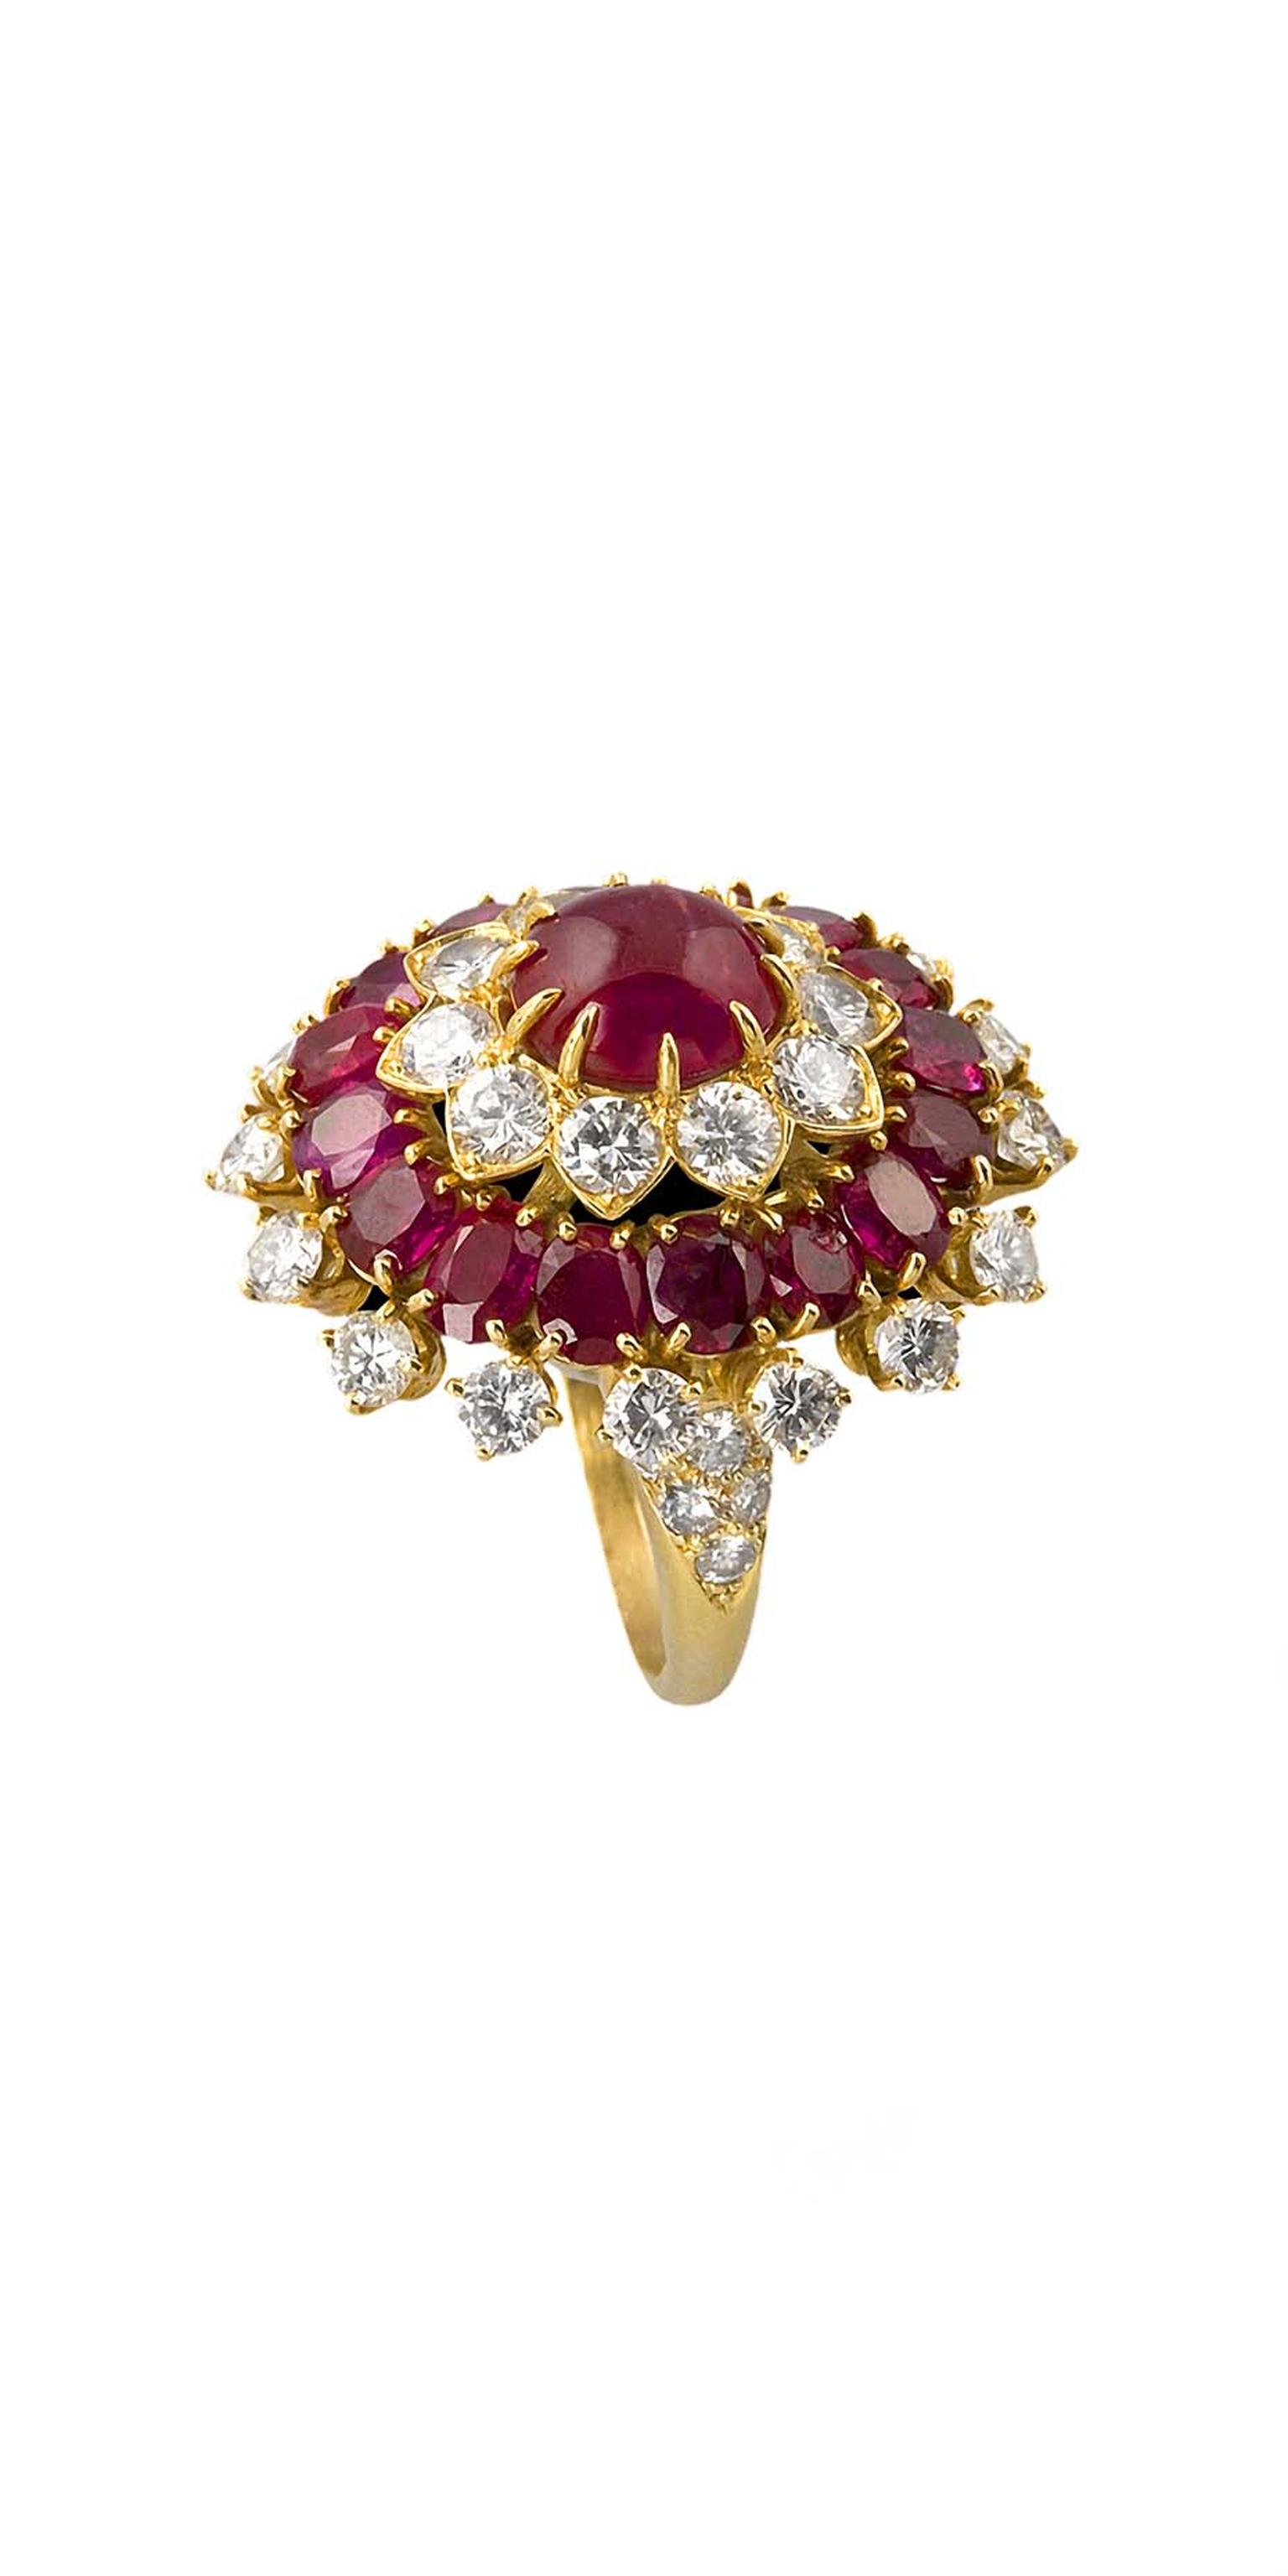 Macklowe Gallery's Indian inspired gold, ruby and diamond ring by Van Cleef & Arpels, featuring a 3.75ct center, surrounded by 38 diamonds and and 16 rubies.